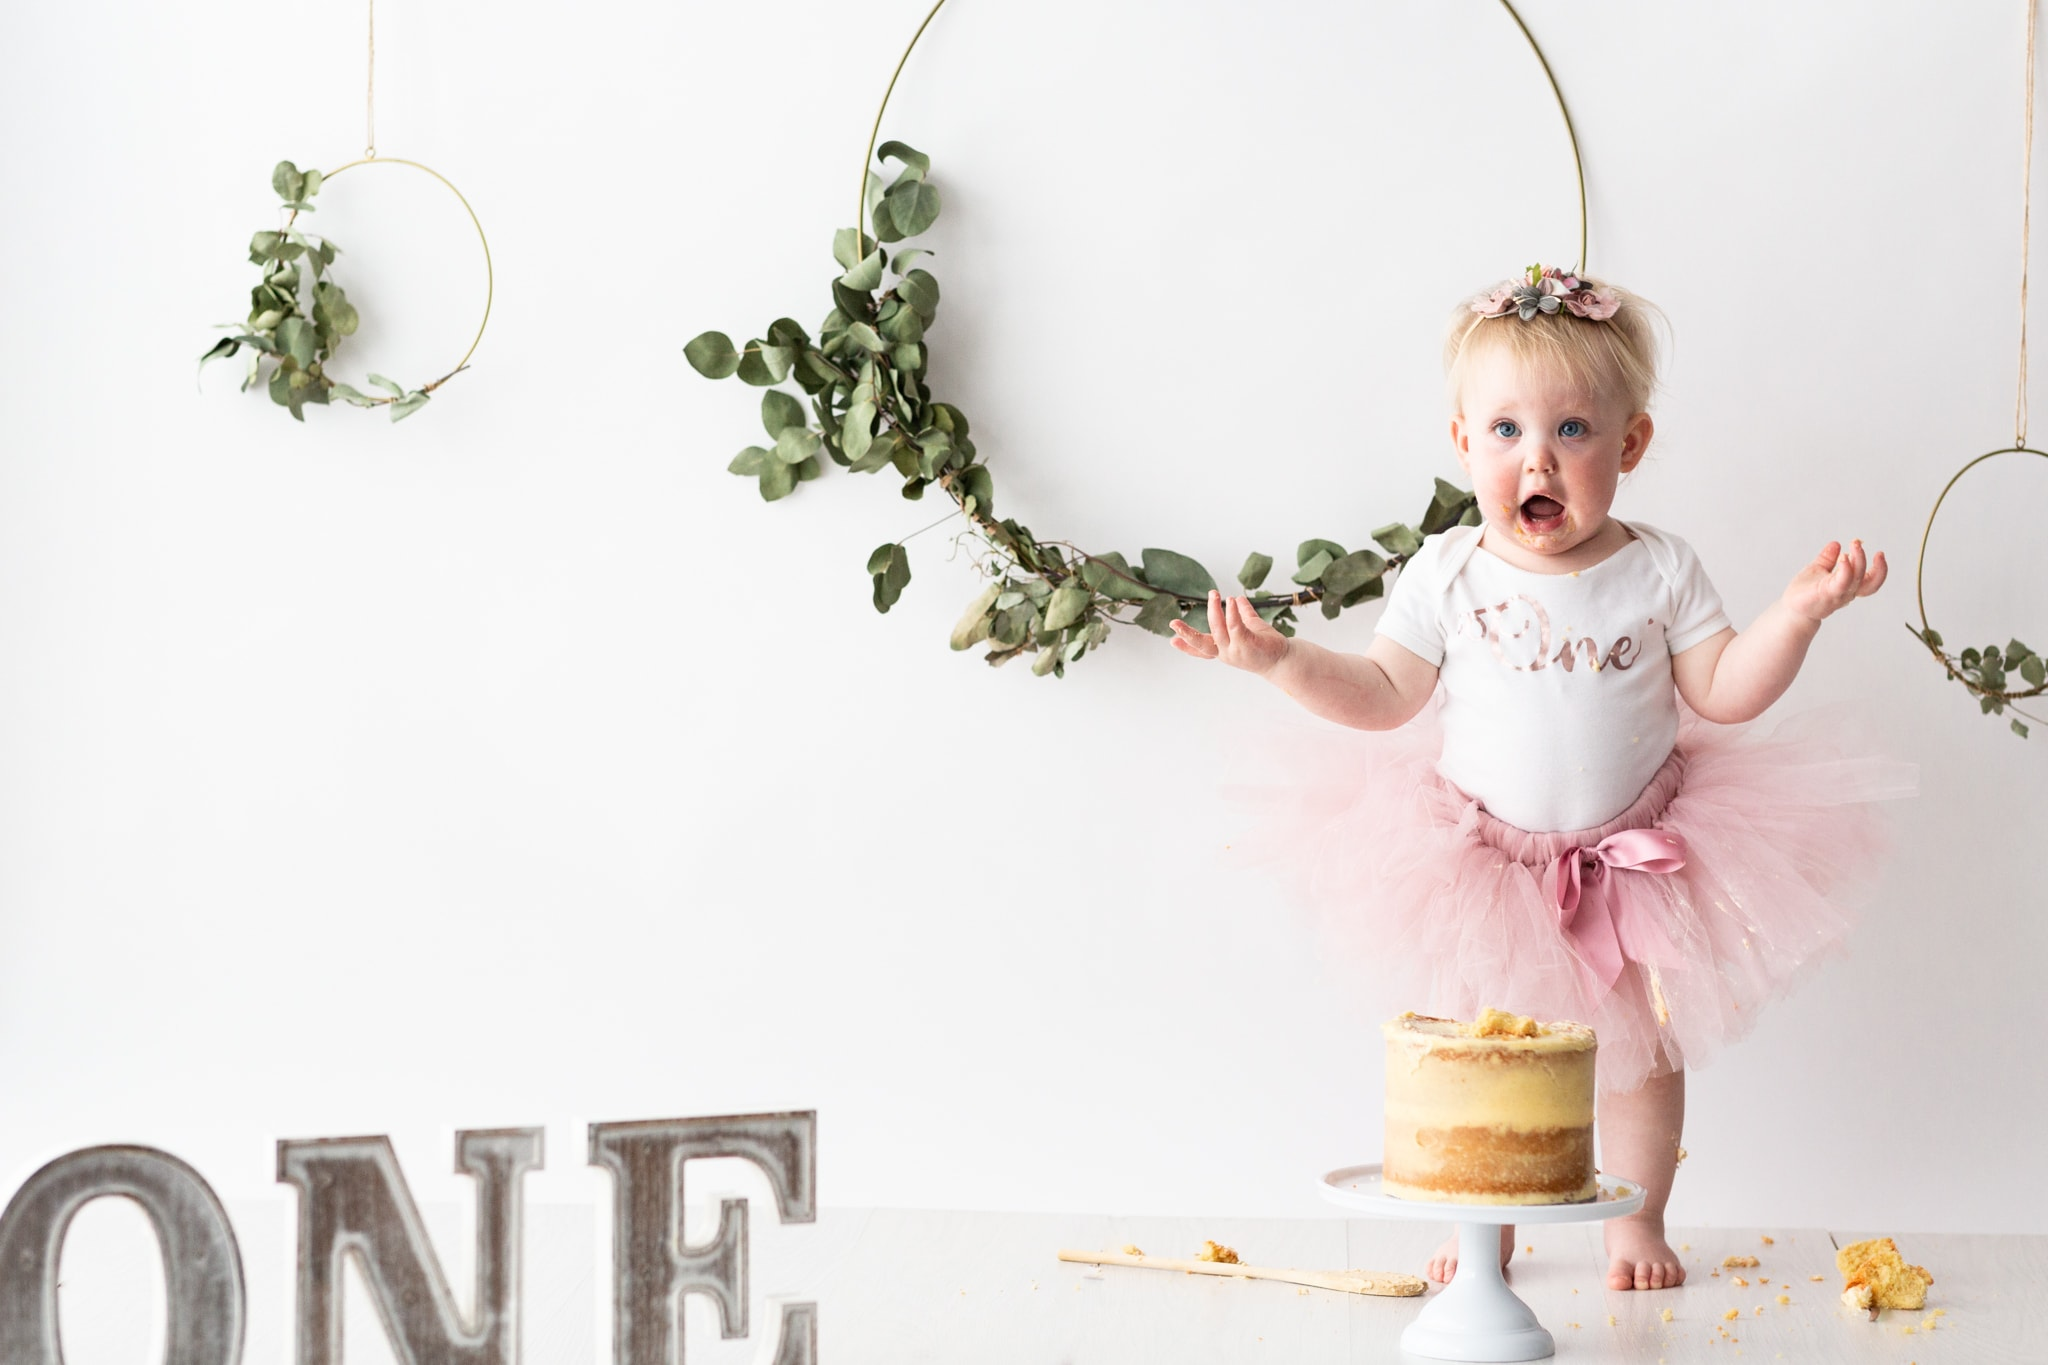 Another month of wonderful Kent cake smash shoots